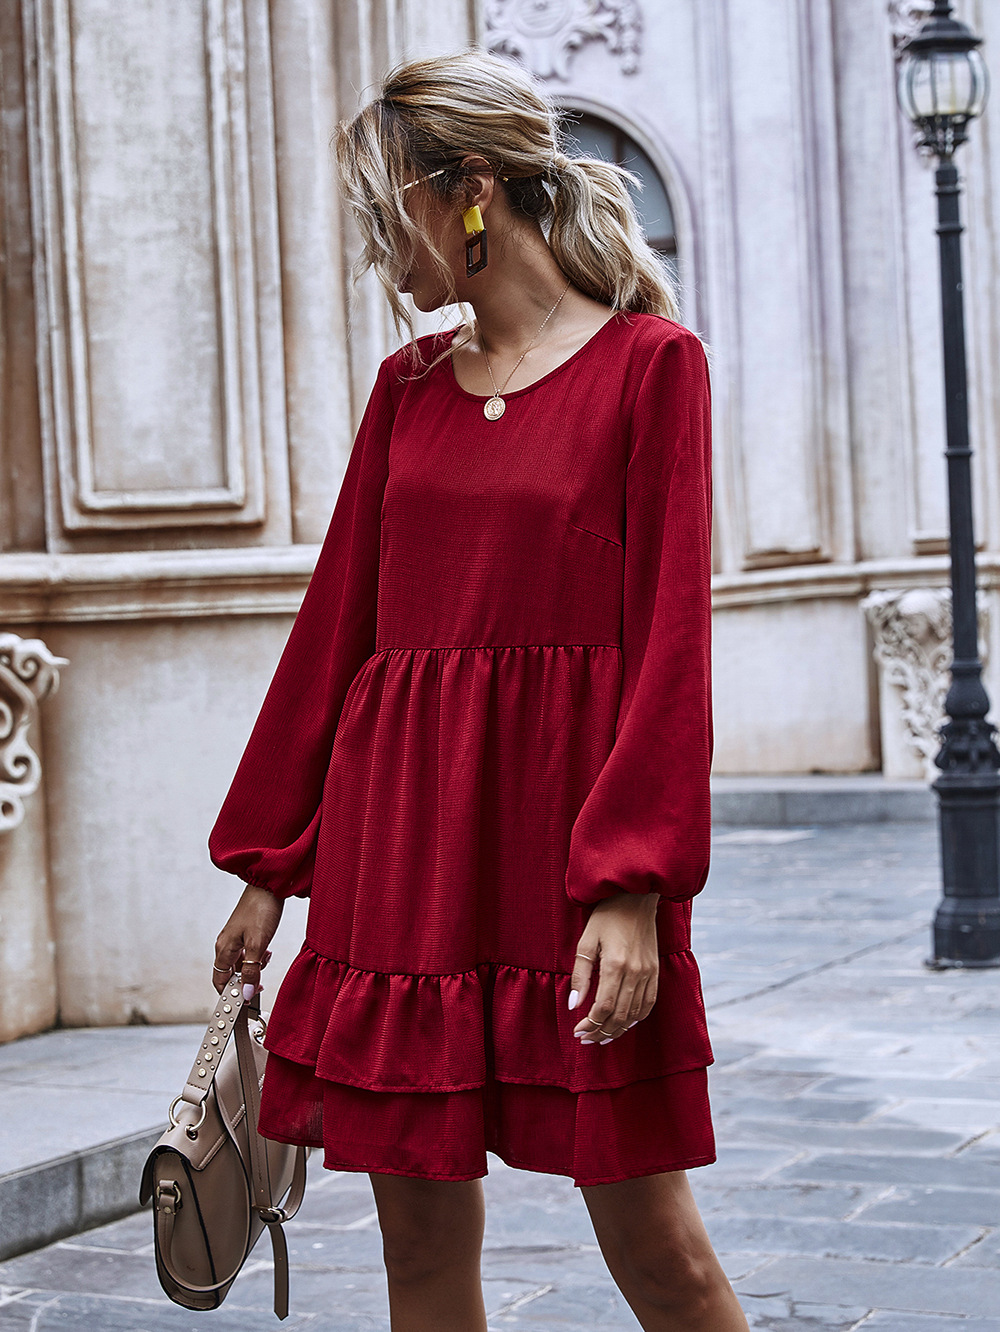 new wine red long-sleeved a-line skirt mid-length ruffle dress wholesale NHDF42